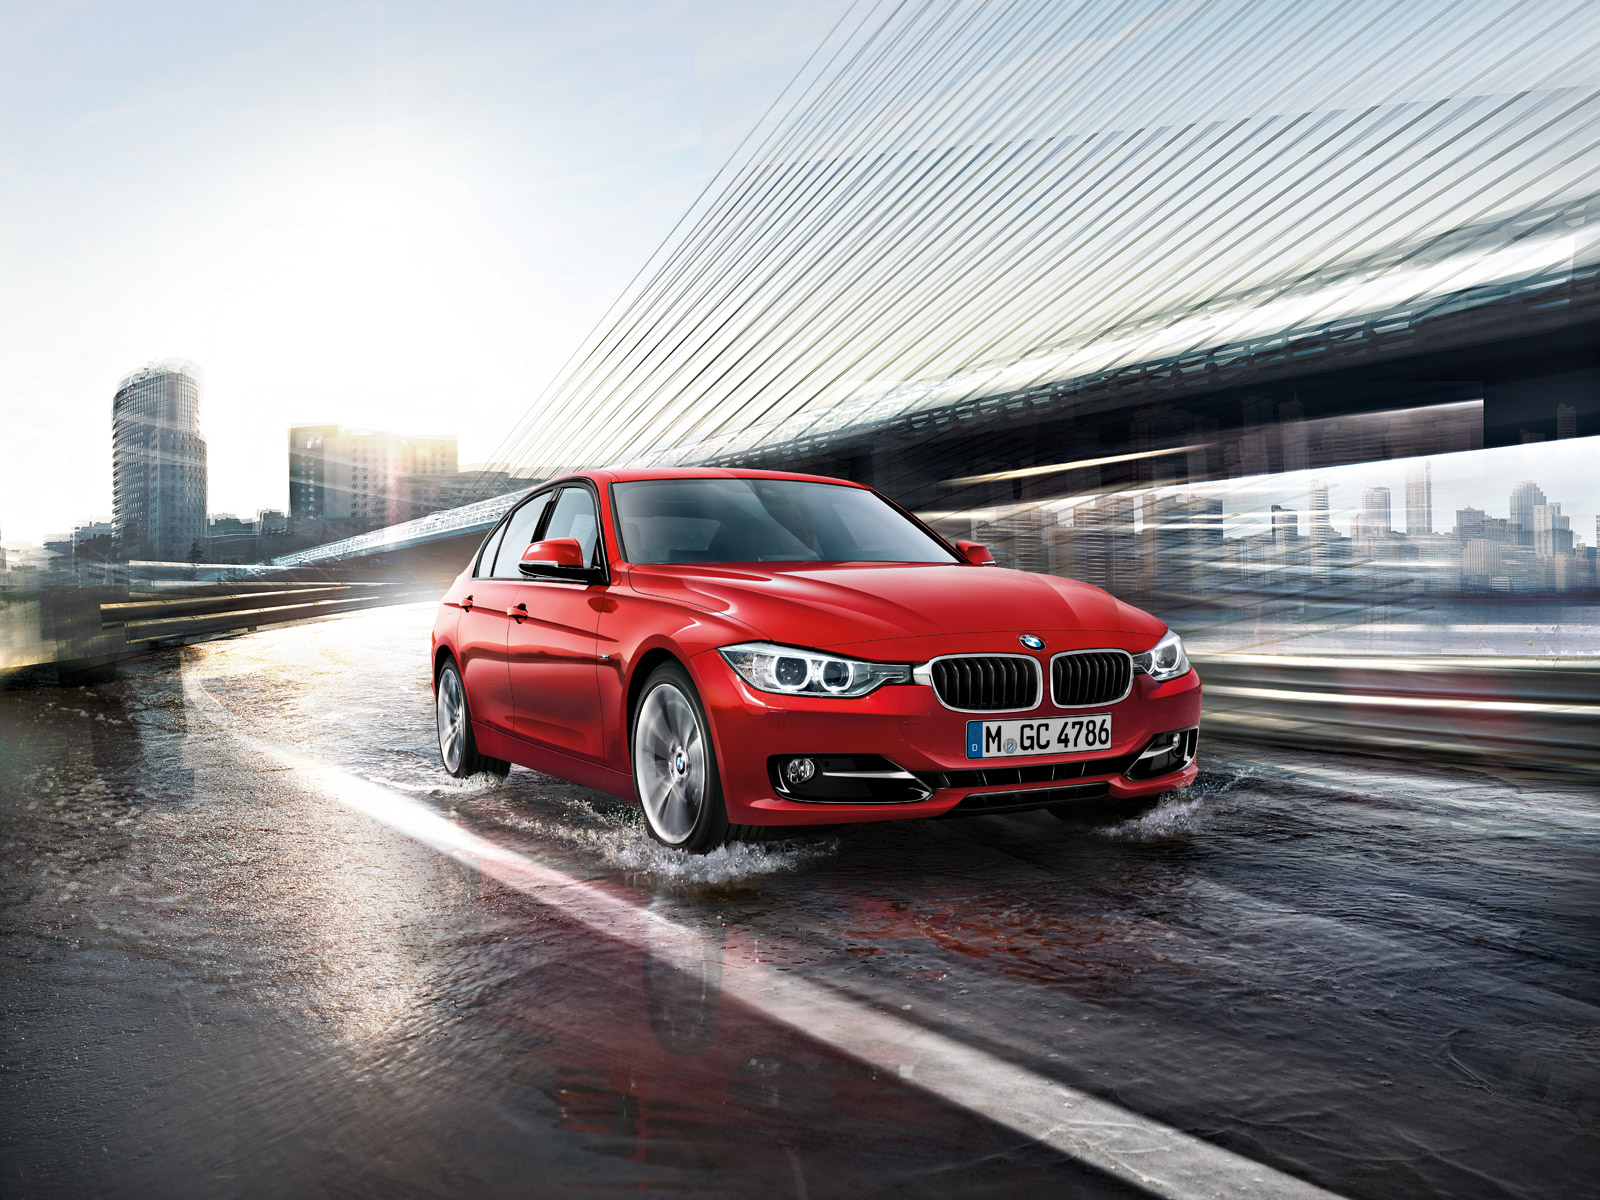 BMW_3series_wallpaper_18_1600